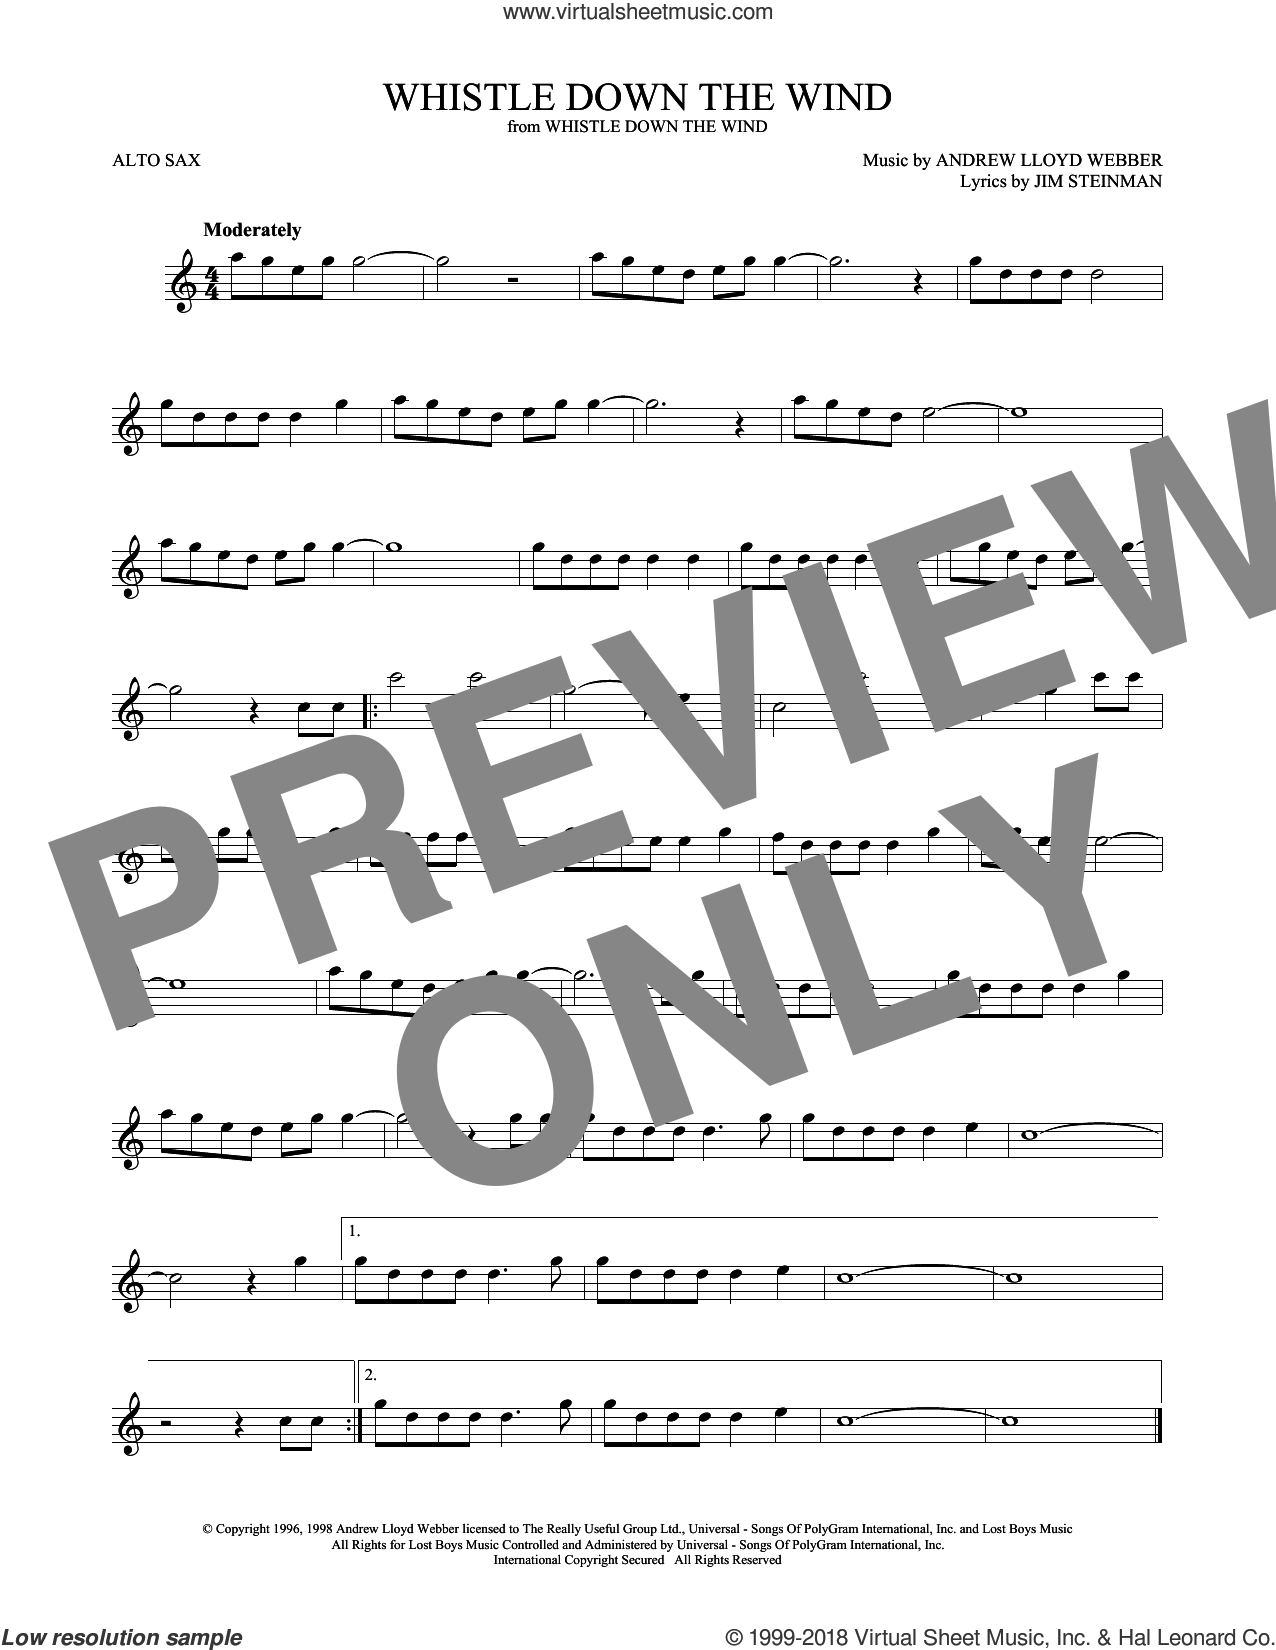 Whistle Down The Wind sheet music for alto saxophone solo by Andrew Lloyd Webber and Jim Steinman, intermediate skill level